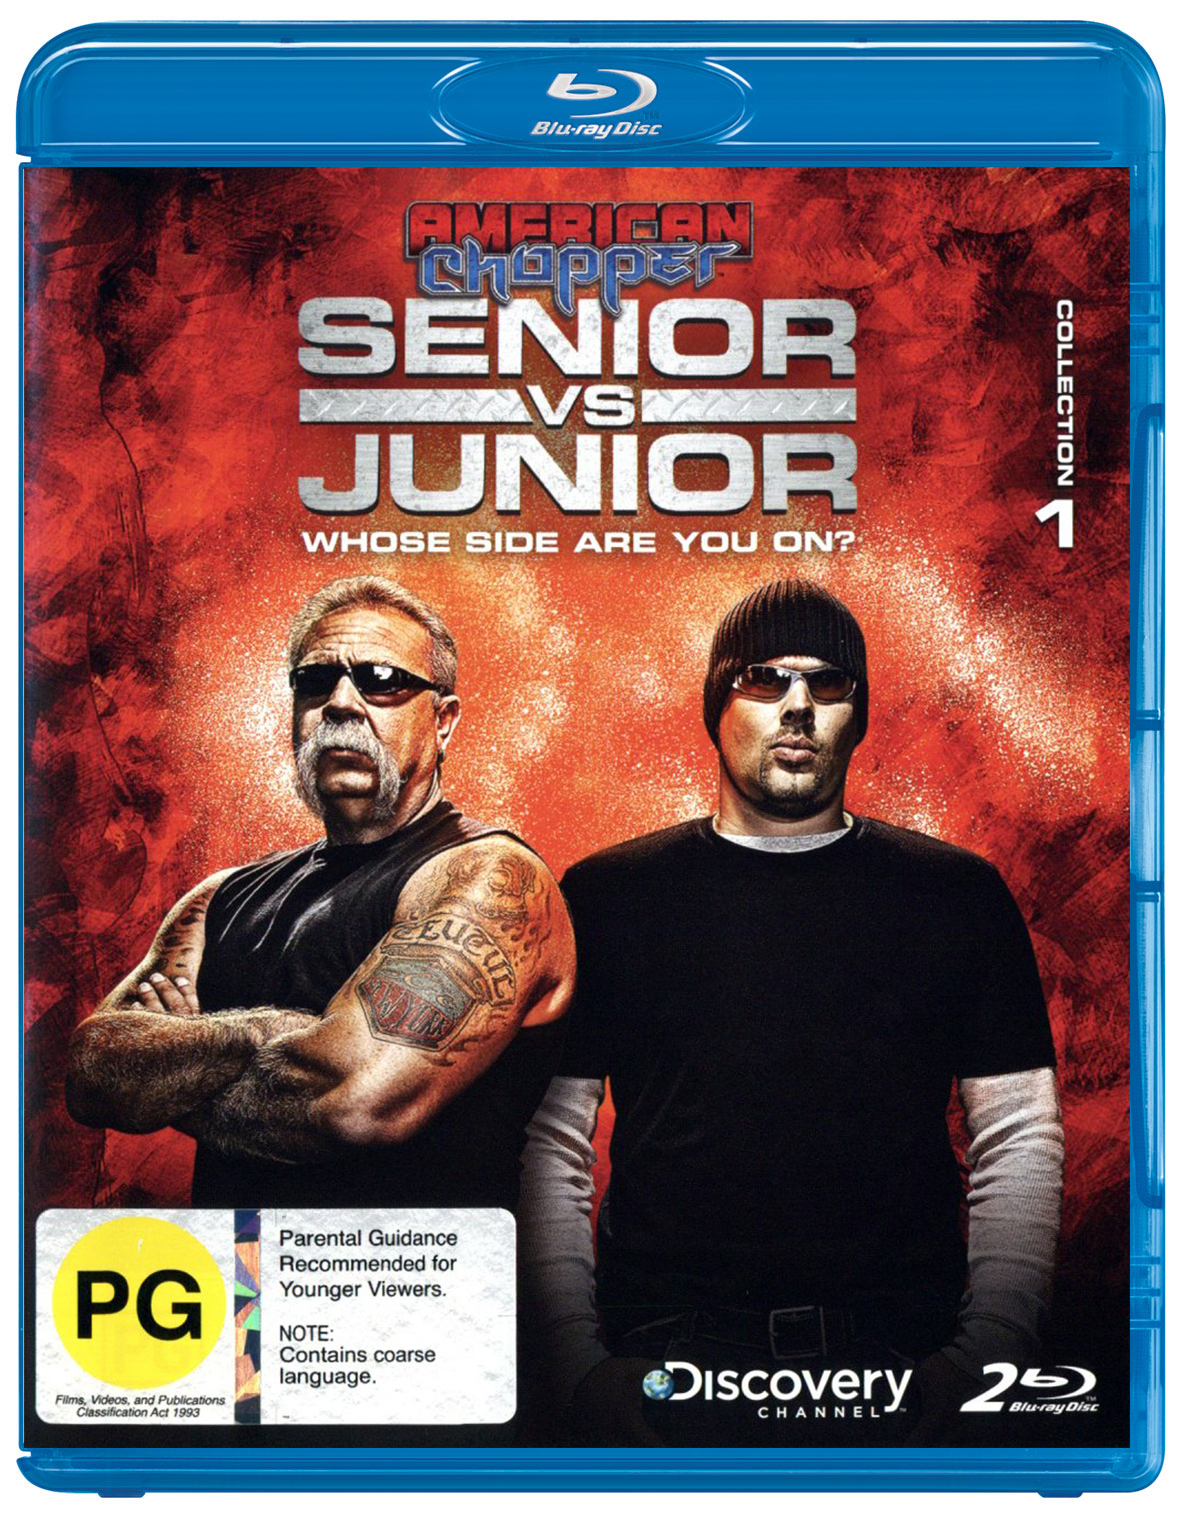 American Chopper: Senior vs Junior (Blu-ray)